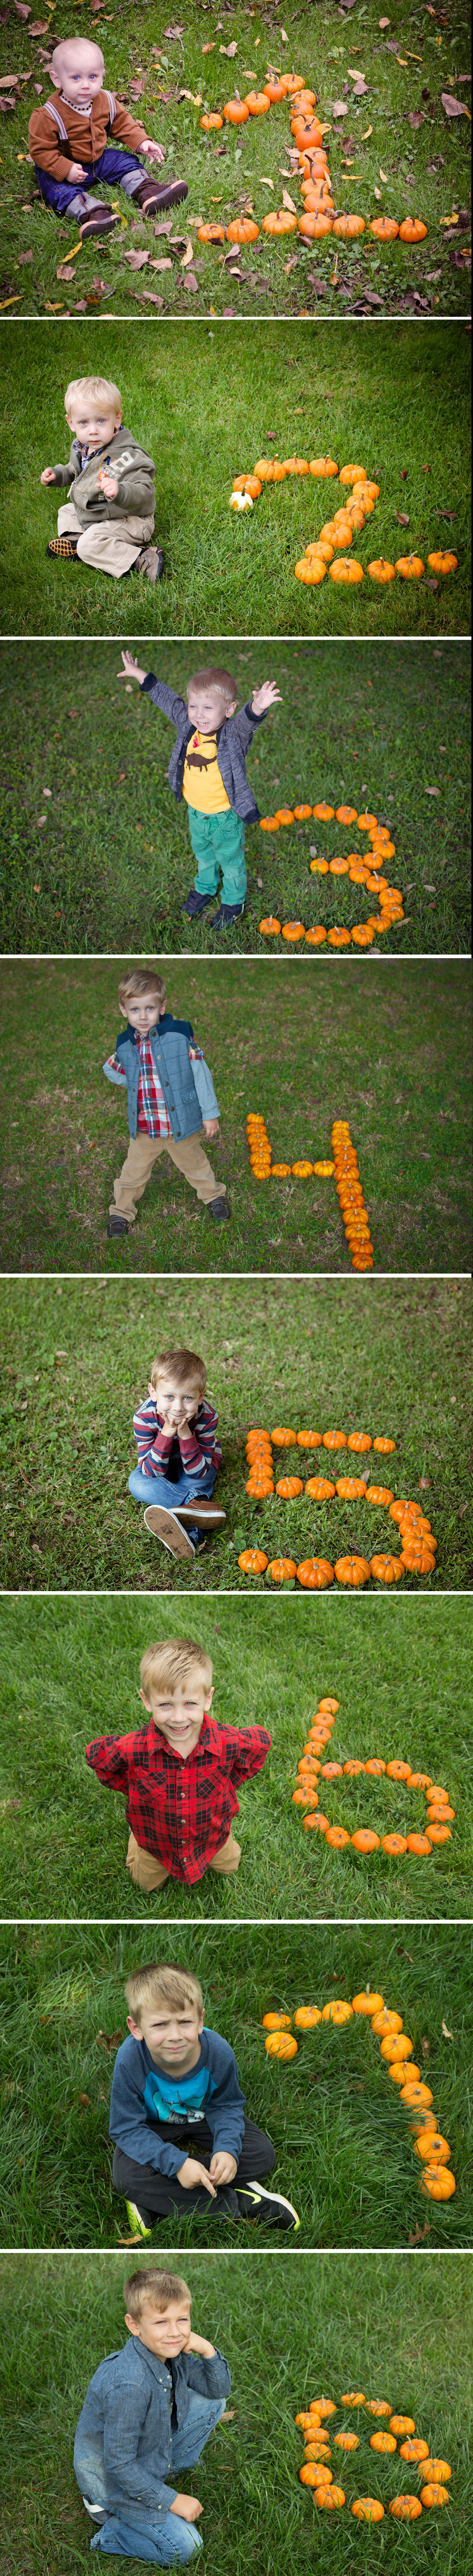 Yearly Pumpkin Birthday Photos | Photo Project Idea